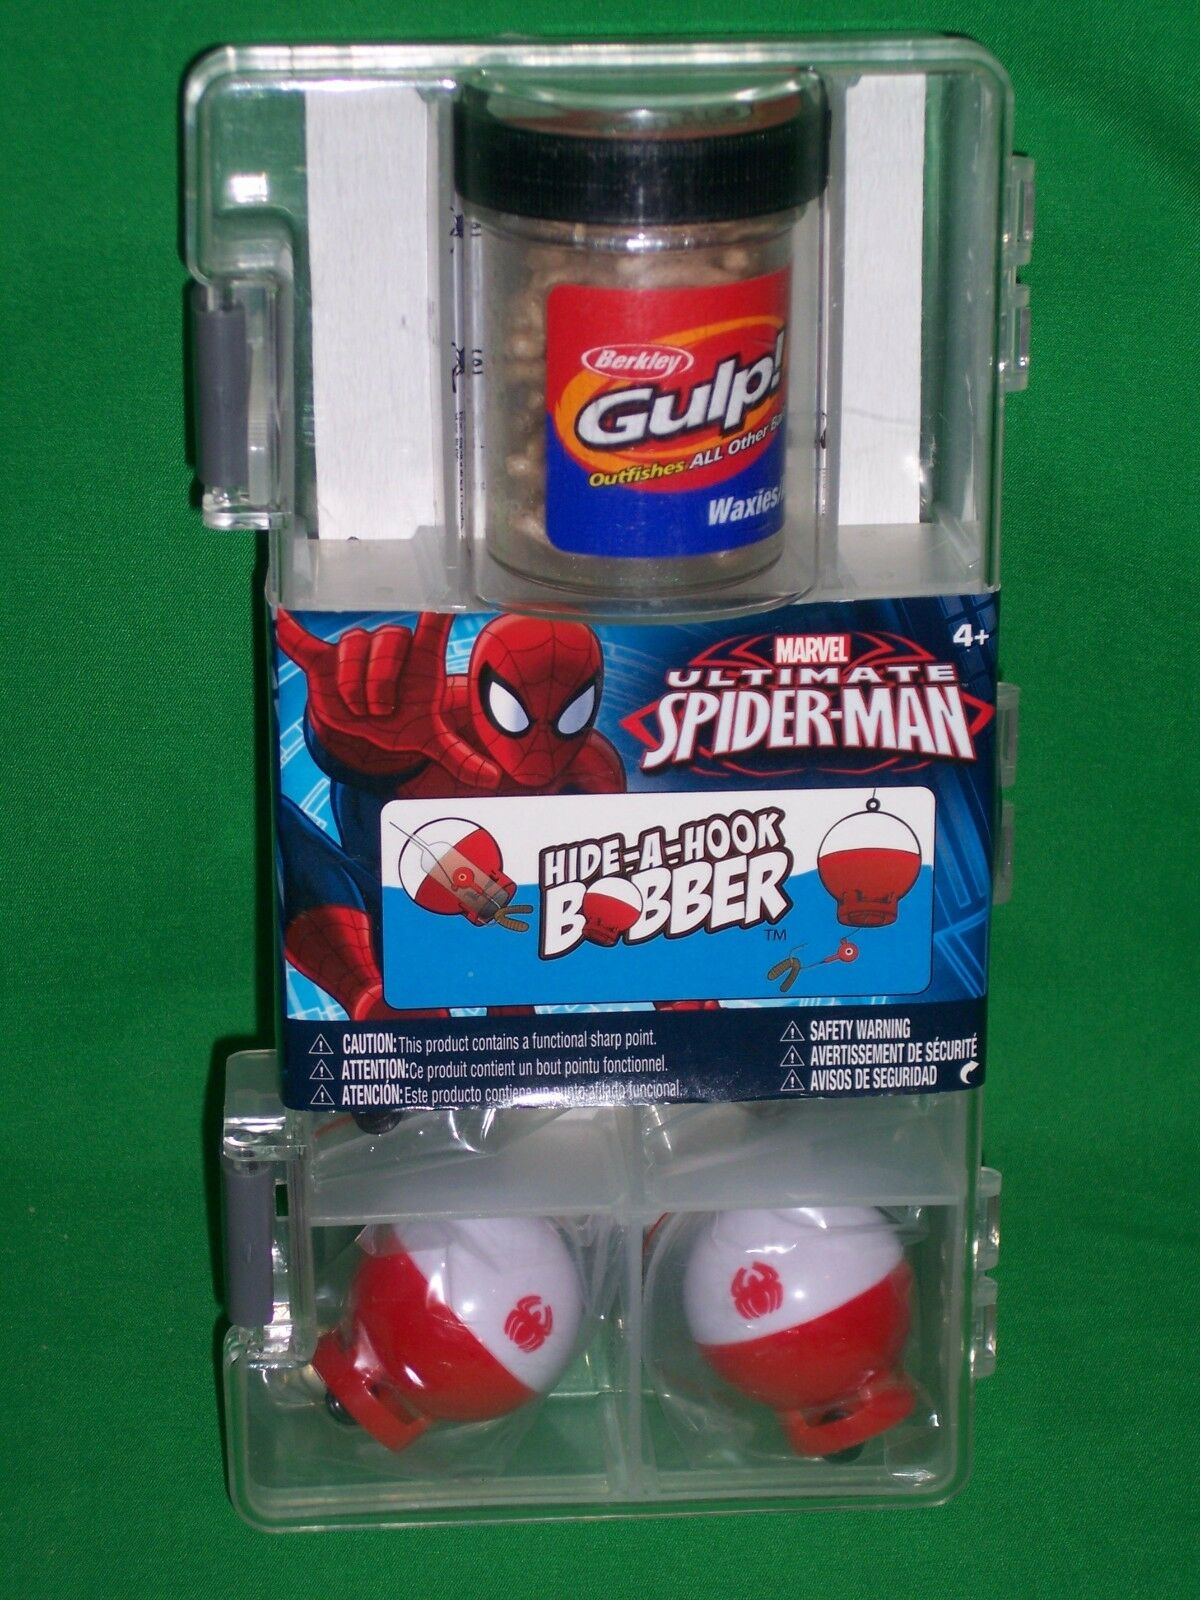 Shakespeare Marvel Spider-Man Hide-A-Hook Bobber Fishing Tackle Box Gulp Waxies